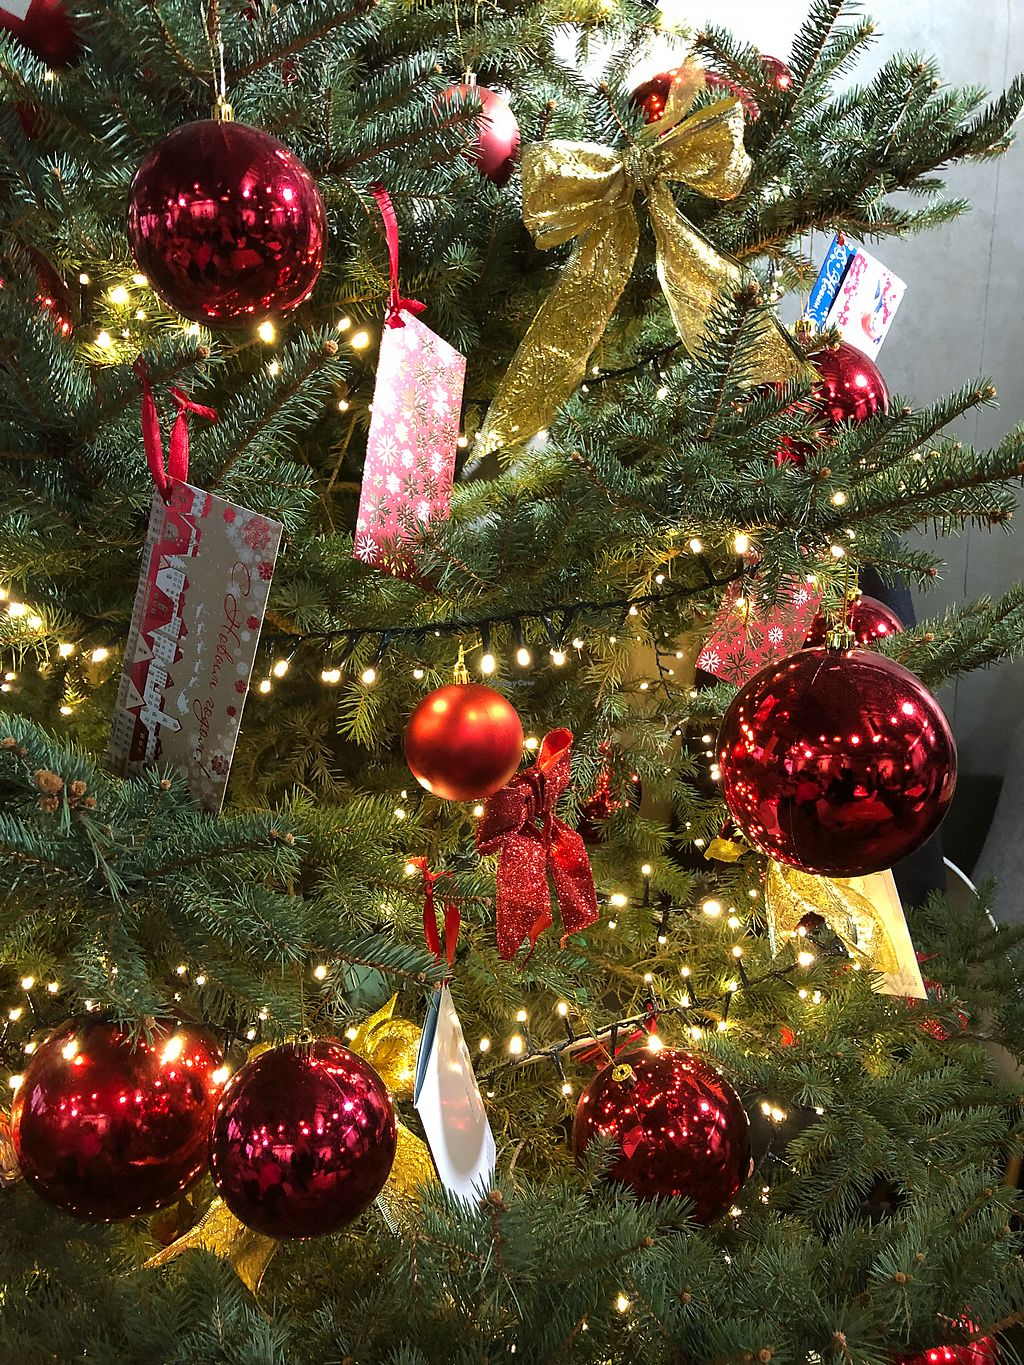 """Photo of Fresh - Bolshaya Dmitrovka  by <a href=""""/members/profile/Evgenia"""">Evgenia</a> <br/>New Year Tree  <br/> December 30, 2017  - <a href='/contact/abuse/image/33756/340918'>Report</a>"""